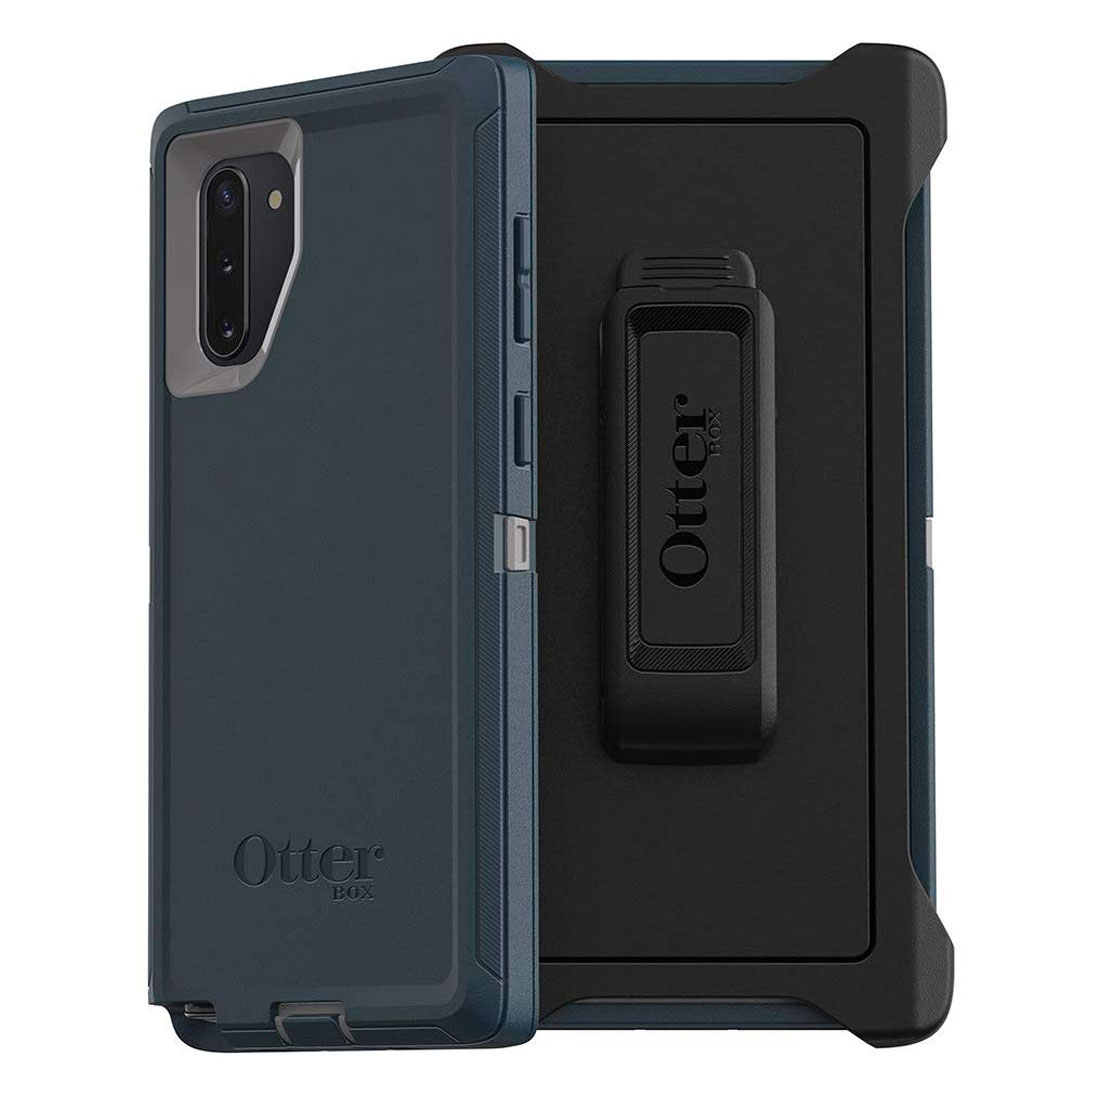 Otterbox Defender Case for Samsung Galaxy Note 10 - Gone Fishin Blue